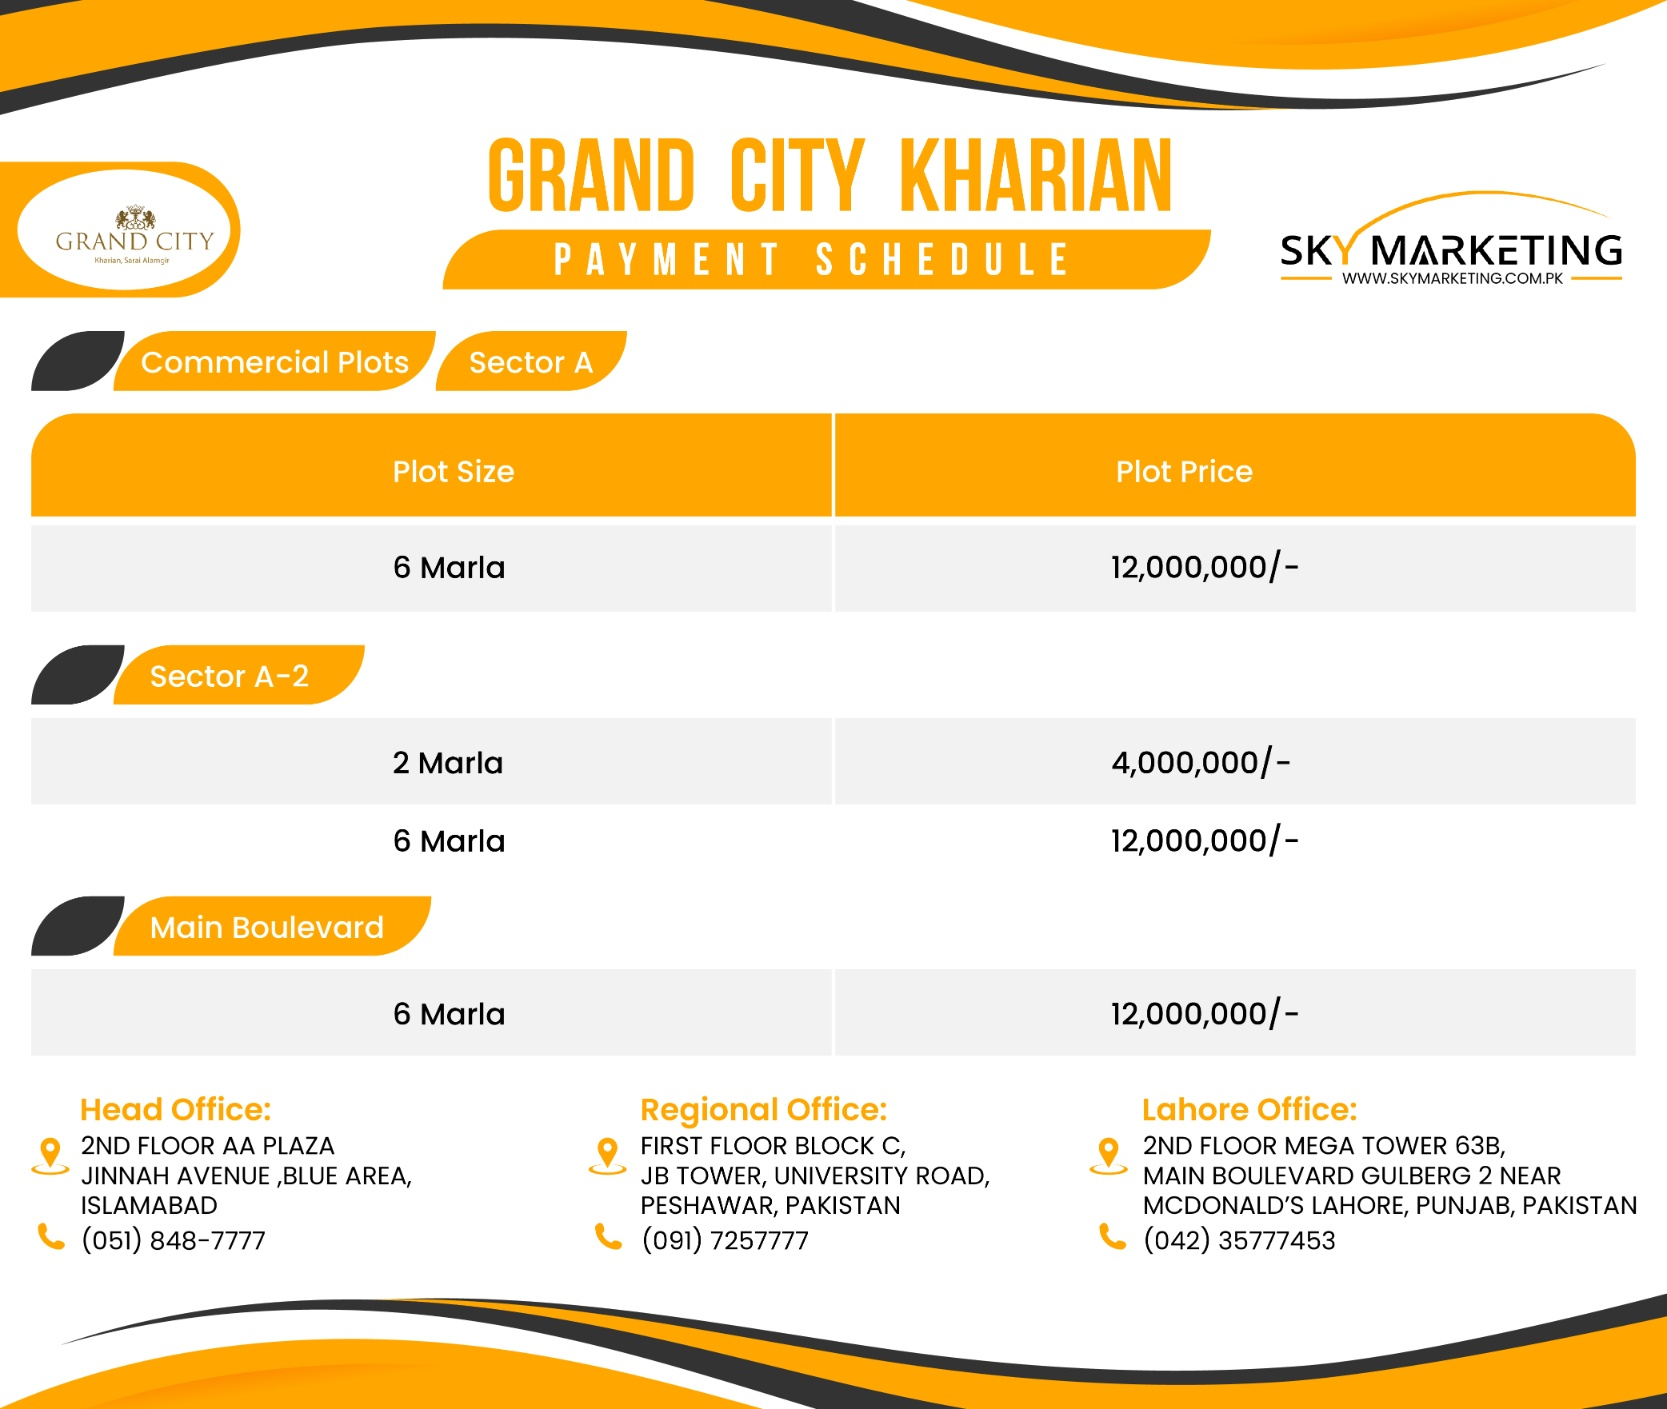 Grand City Kharian Commercial Plo Payment Plants